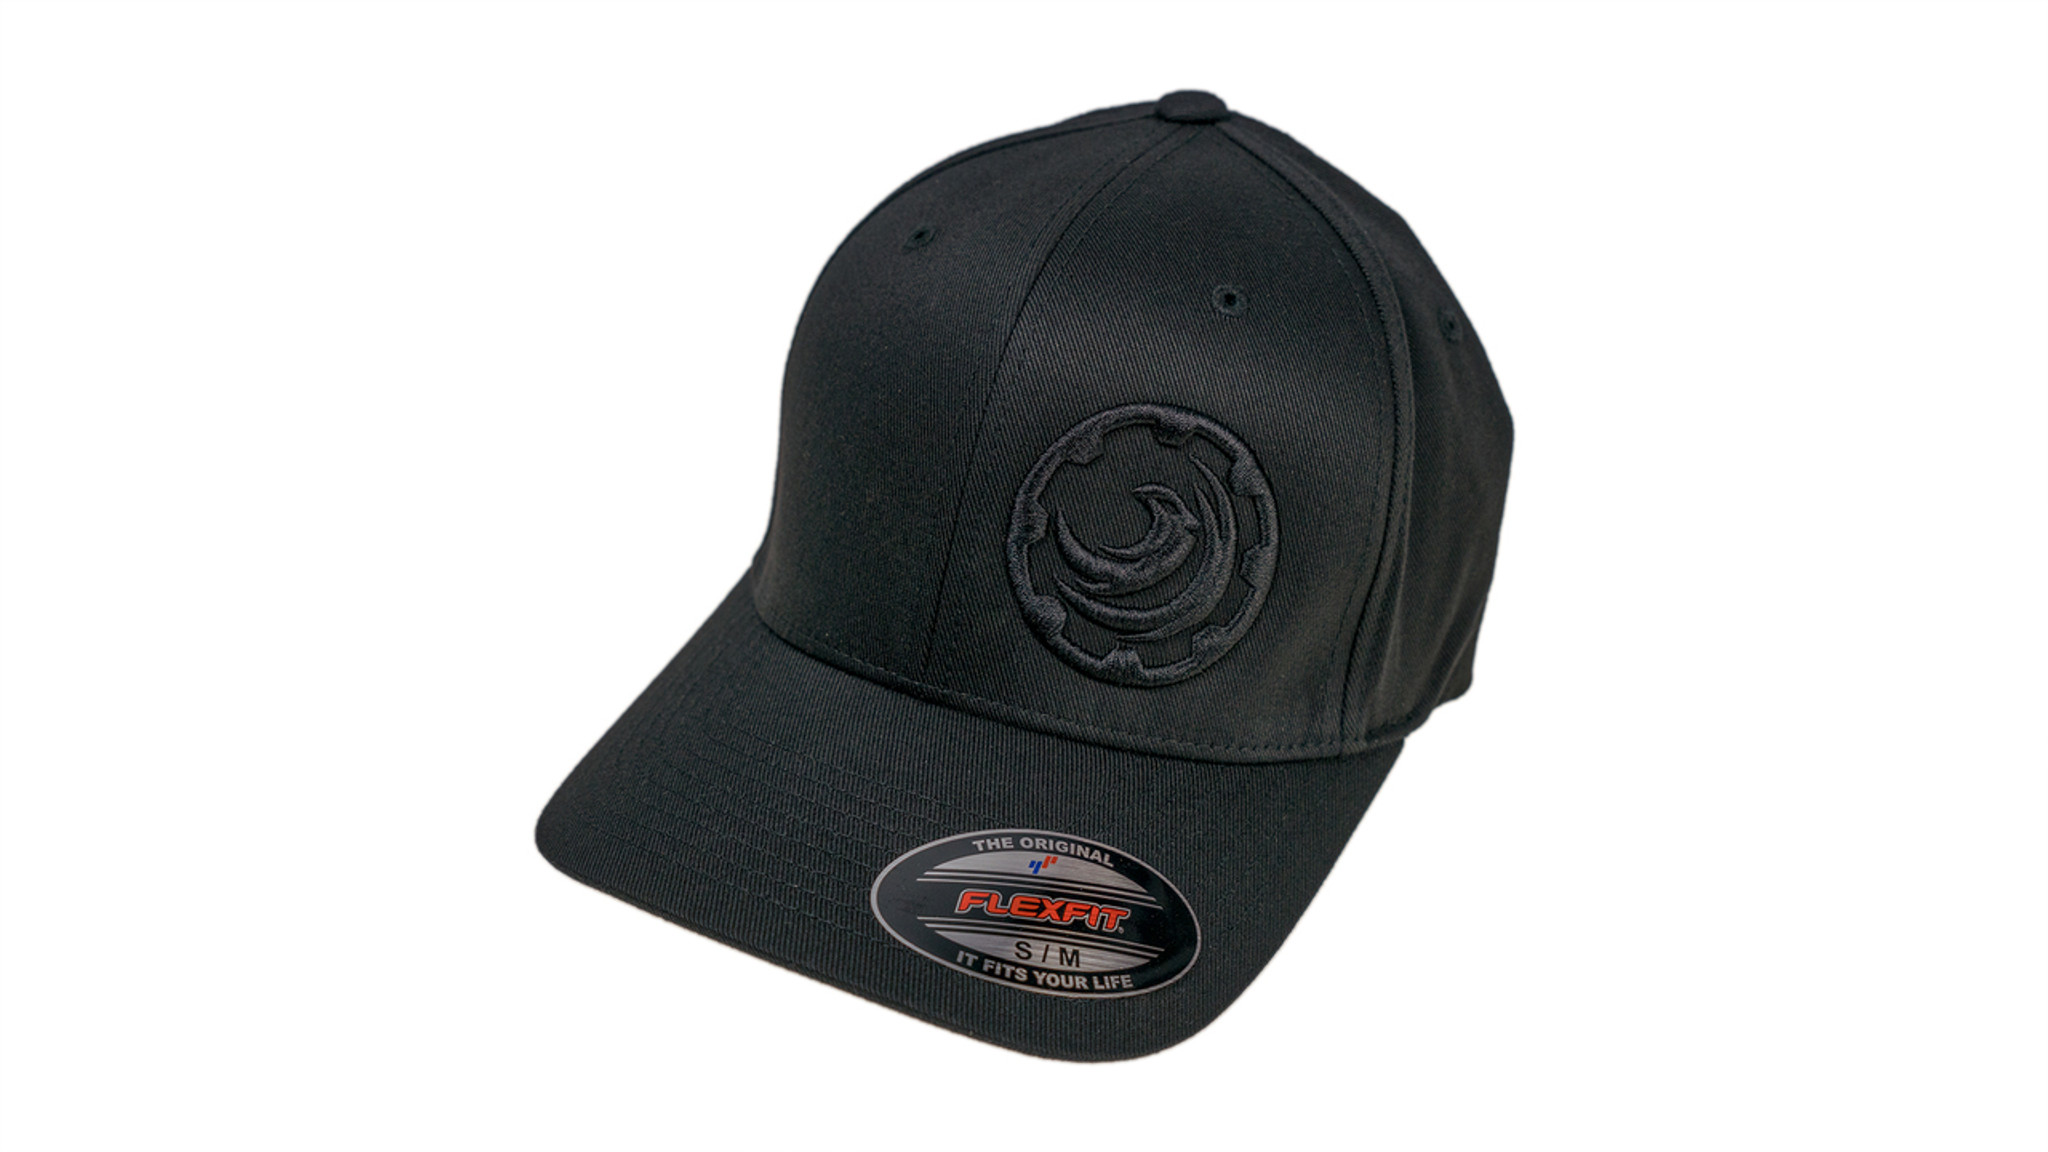 af5bf082fae Murdered Out Hat - Overwatch Precision